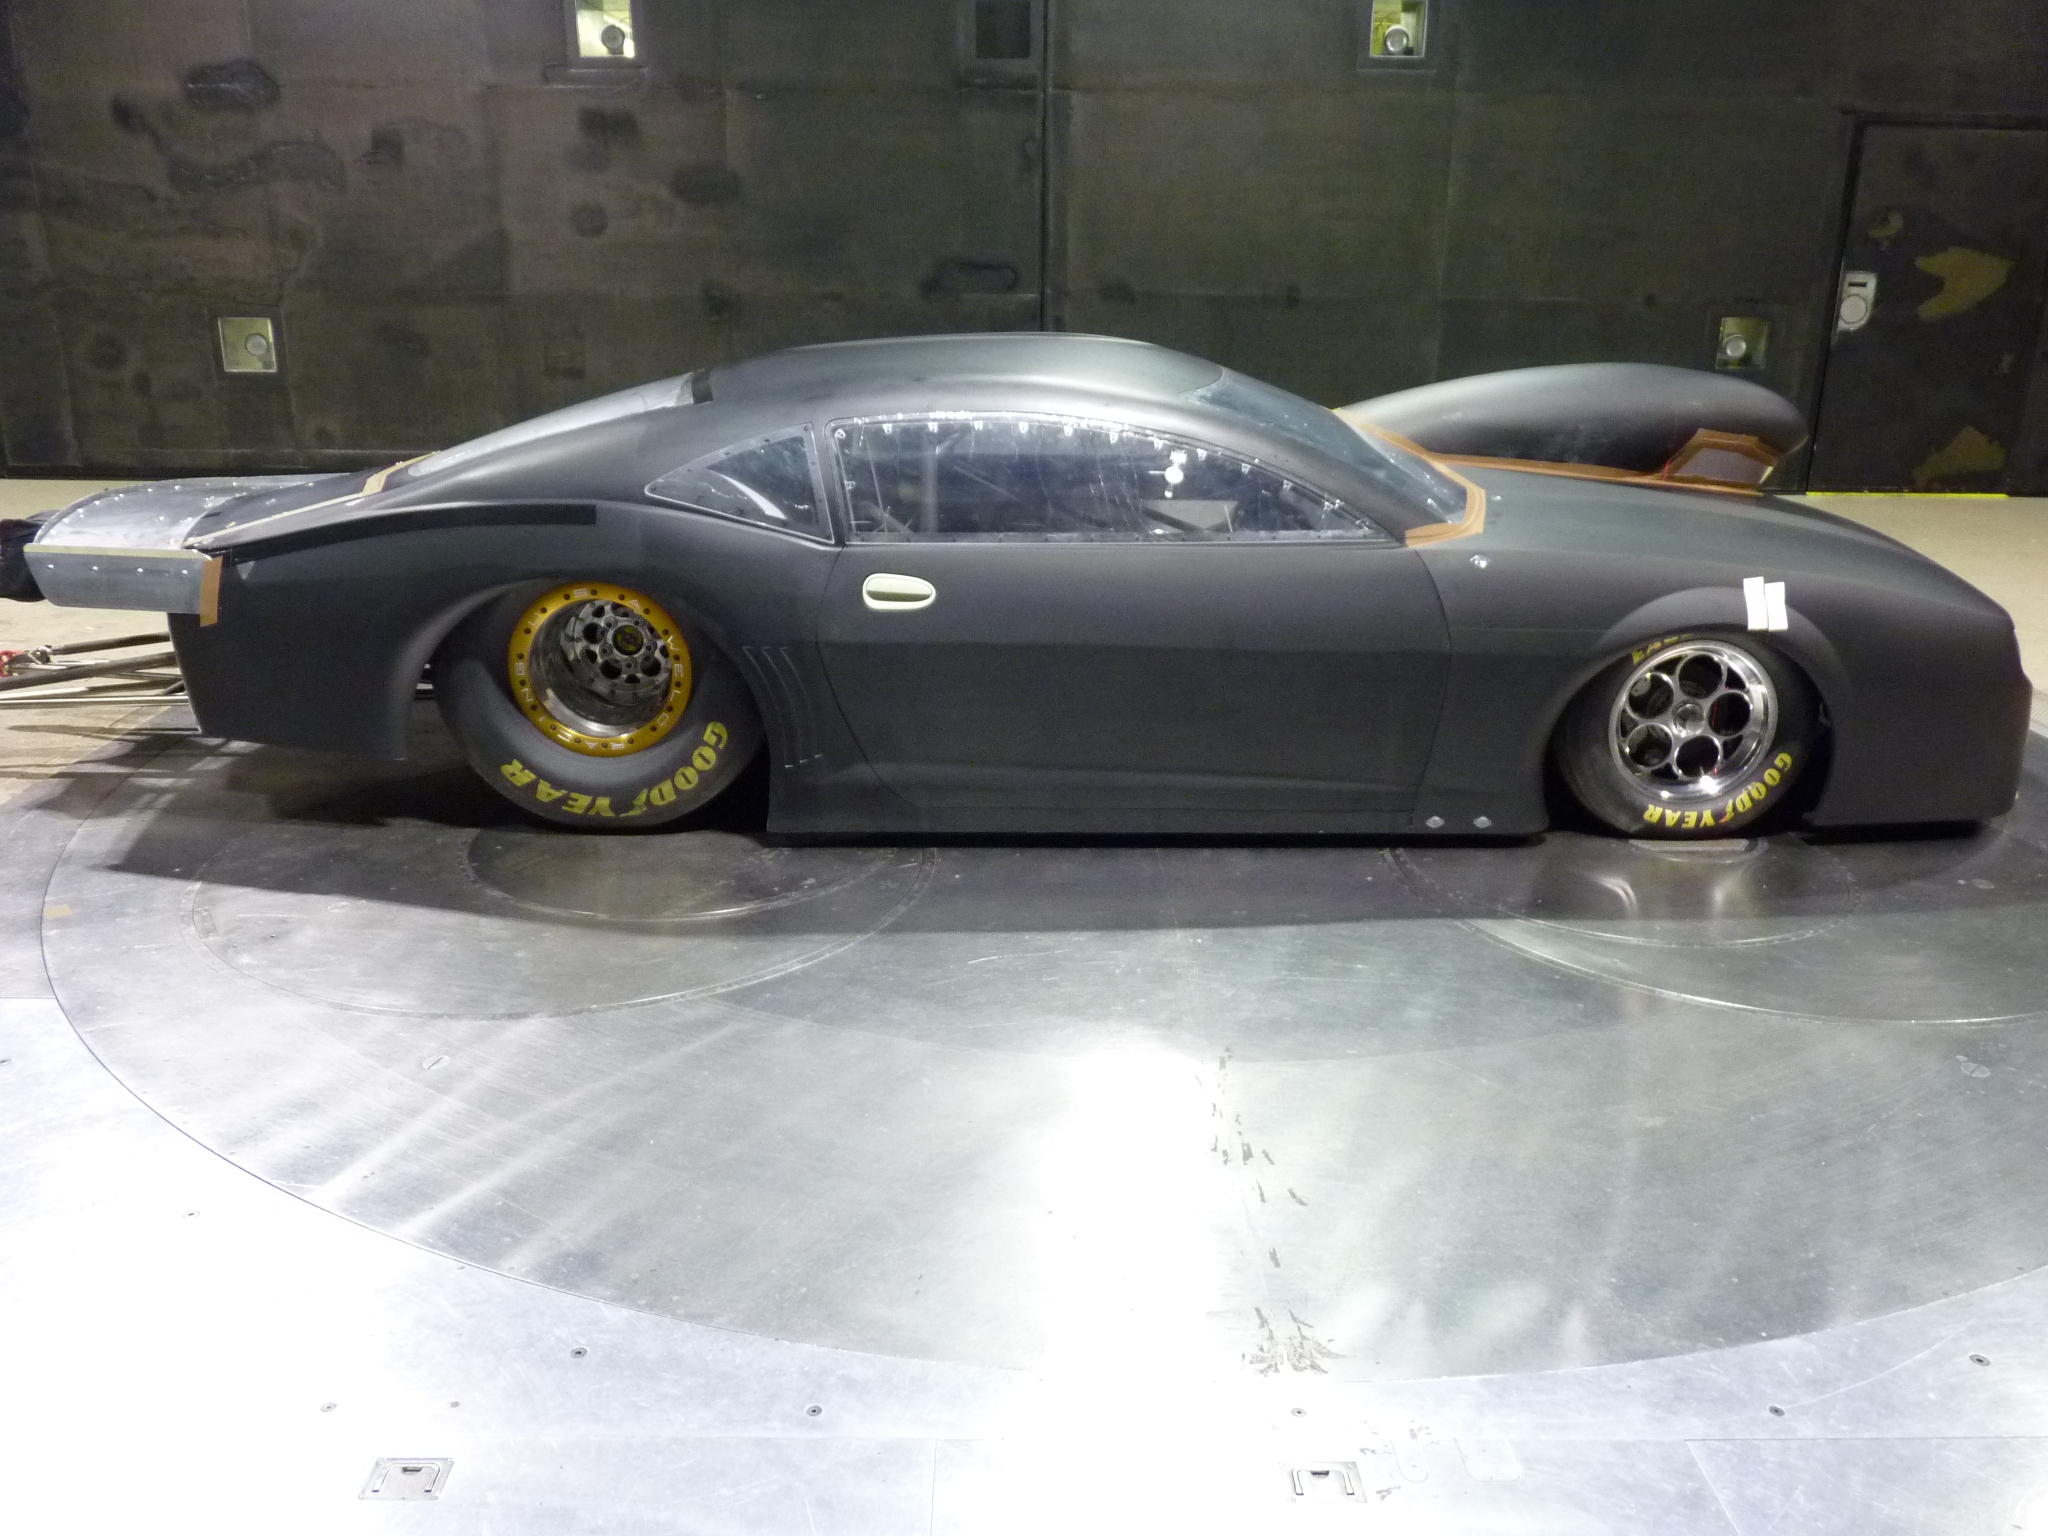 JERRY BICKEL RACE CARS OFFERS NEW CAMARO BODY | Competition Plus